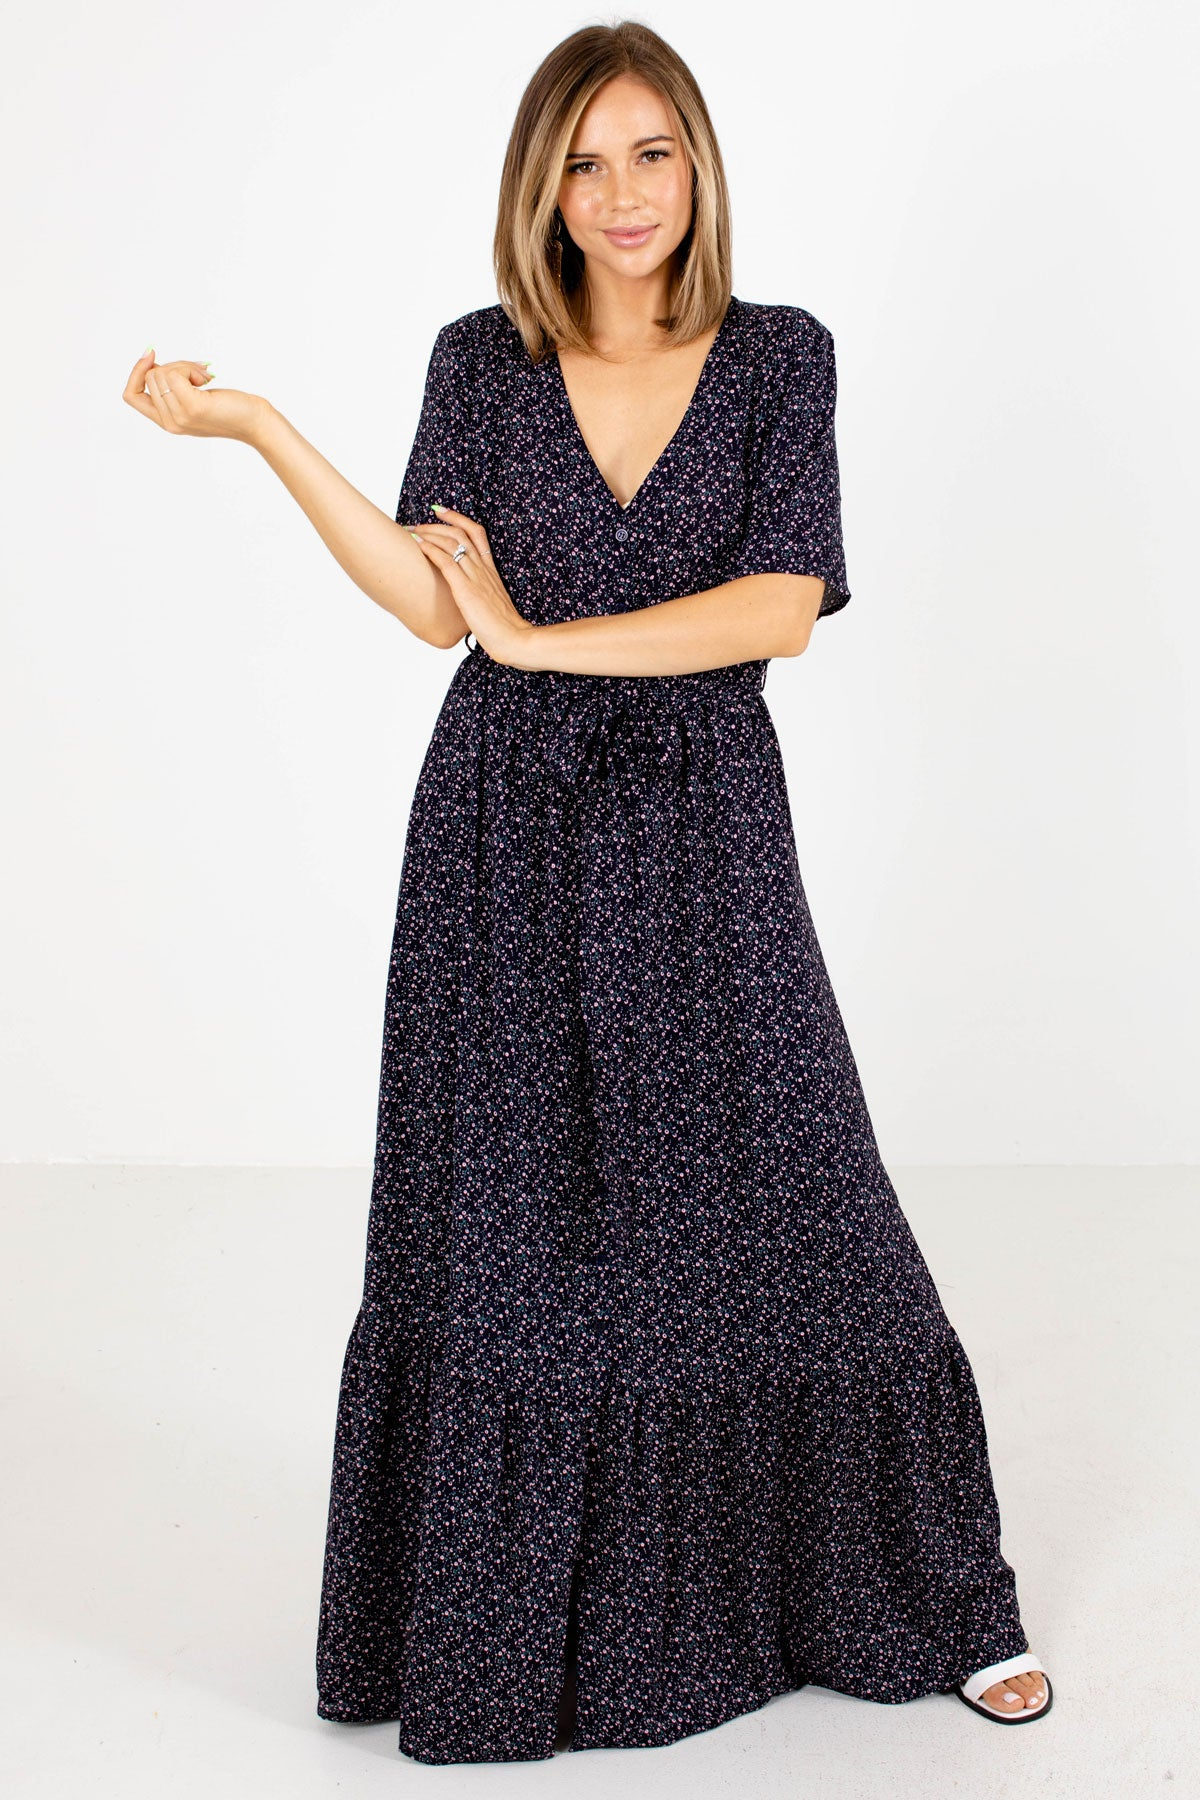 Navy Blue Multicolored Floral Patterned Boutique Maxi Dresses for Women